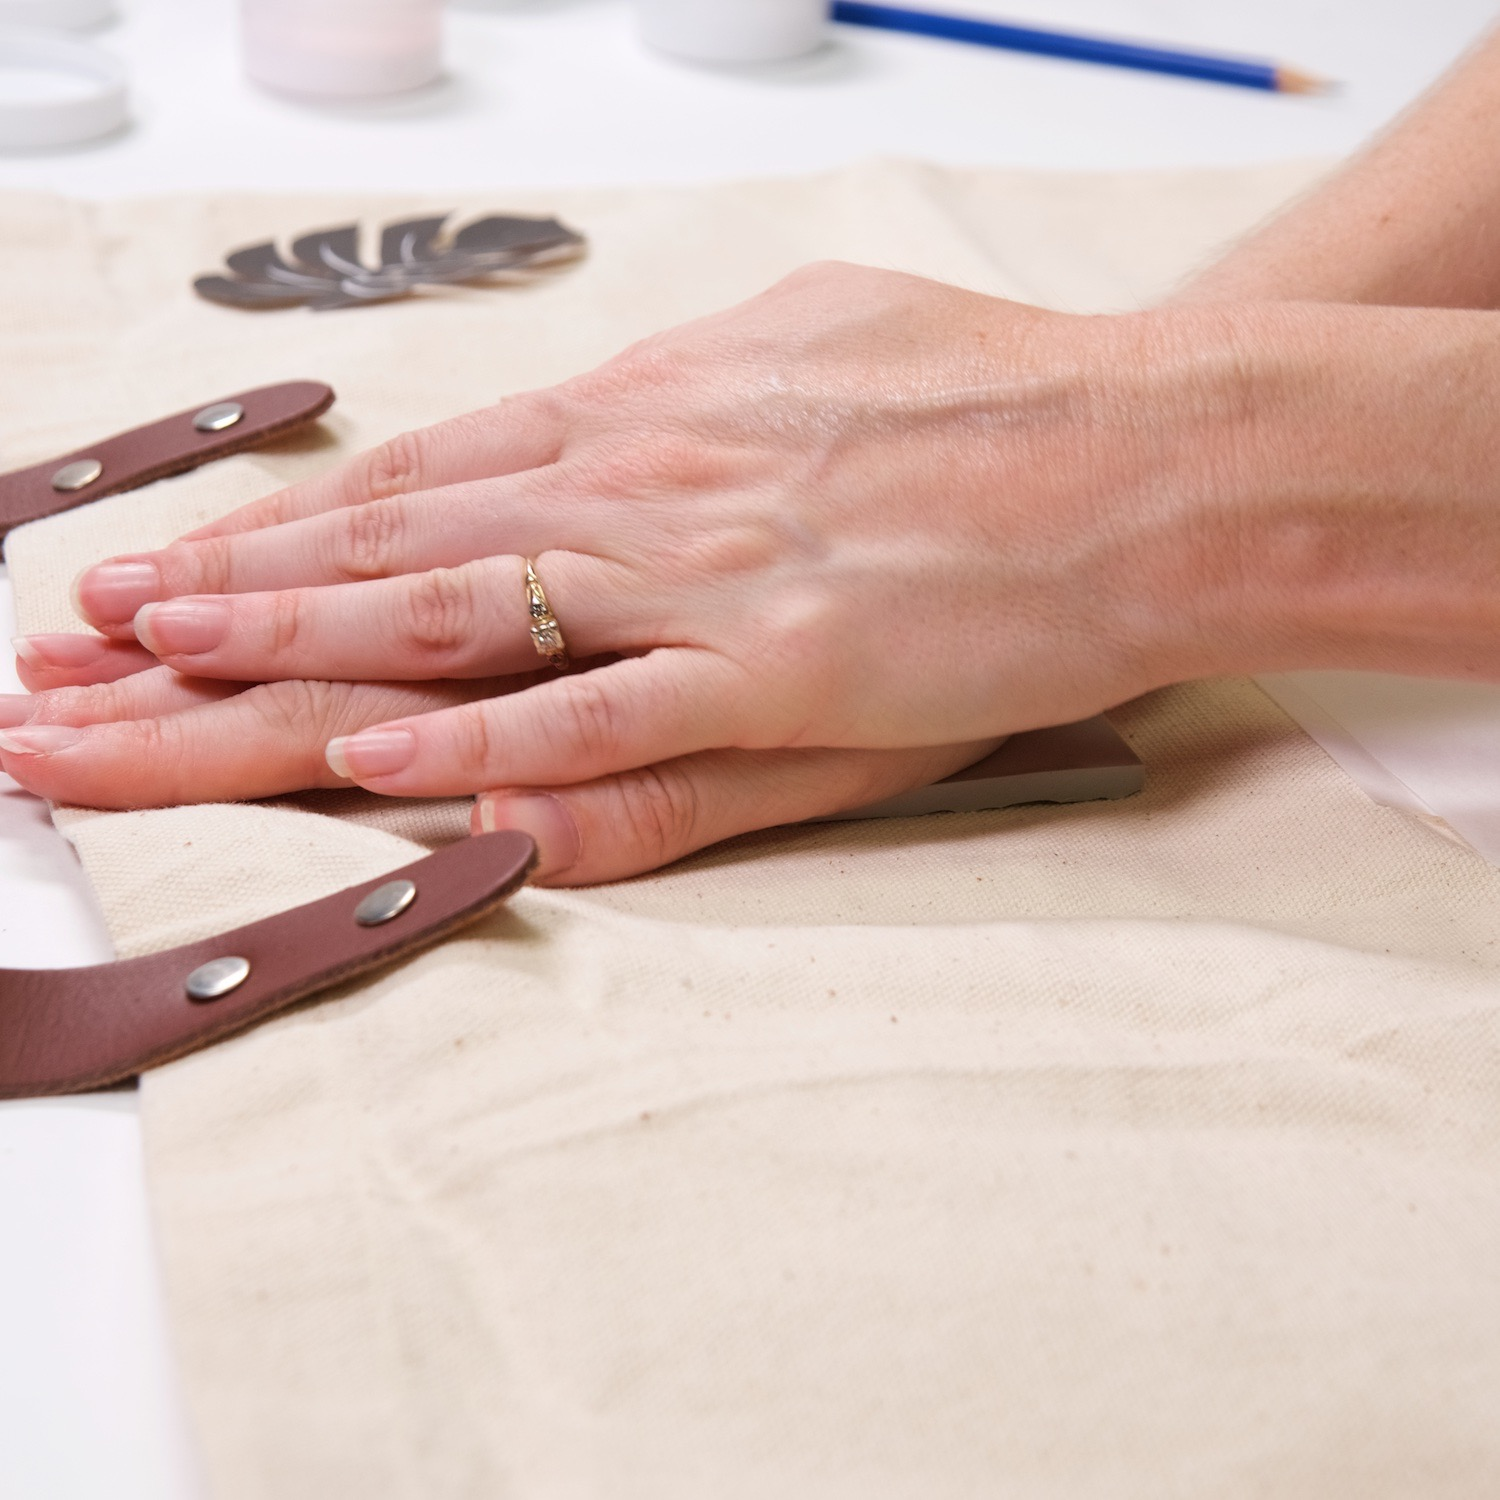 press the linocut block into the fabric to make a print